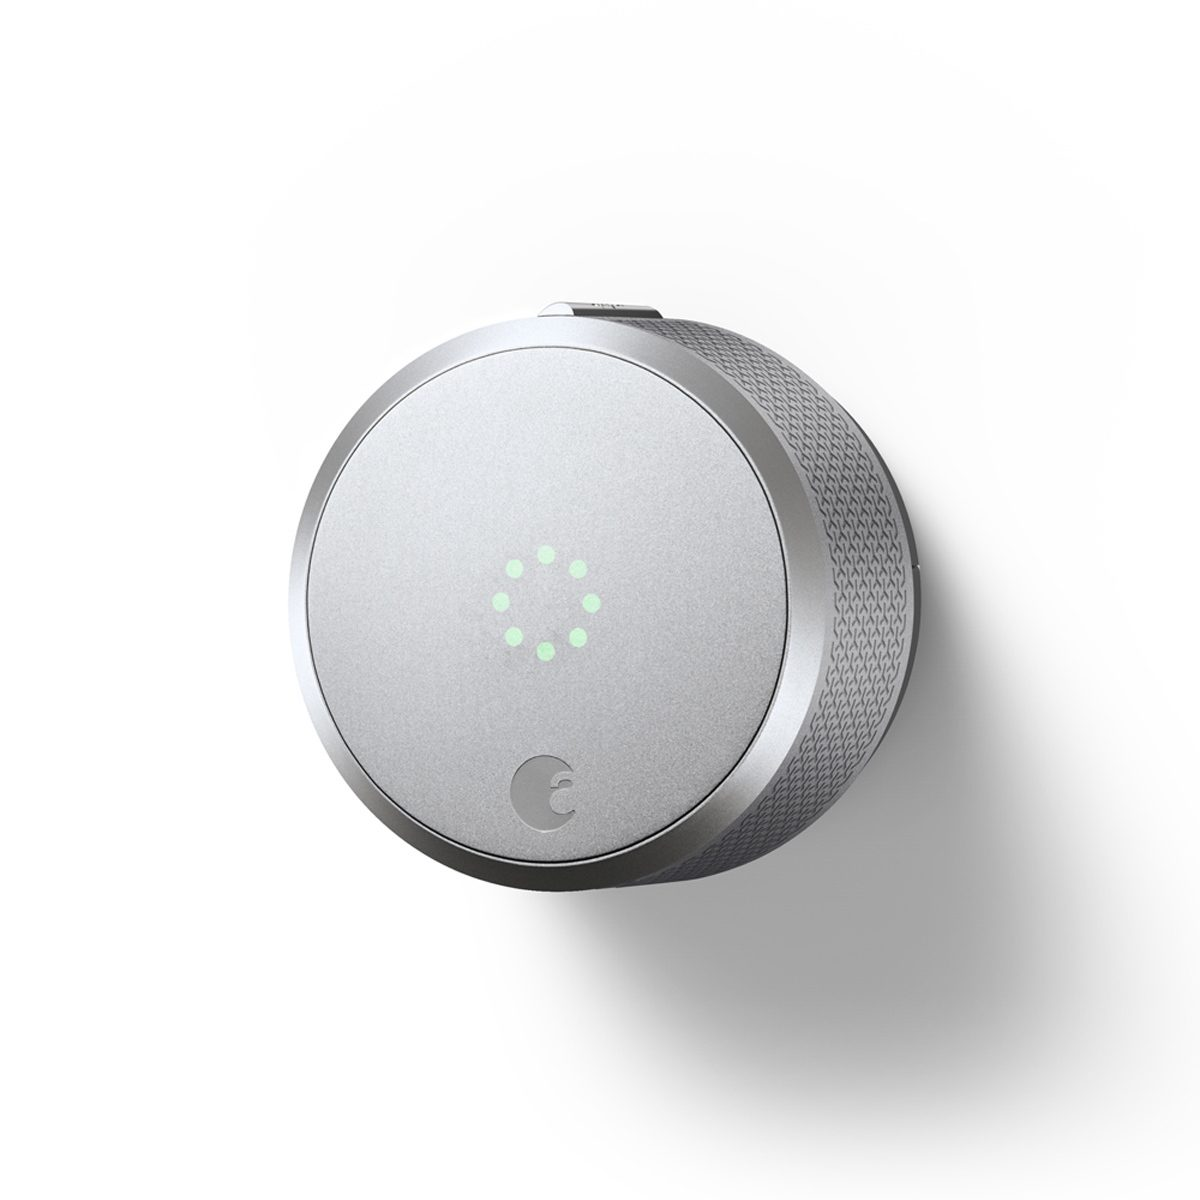 The August Smart Lock Pro Is a a Discrete Smart Lock